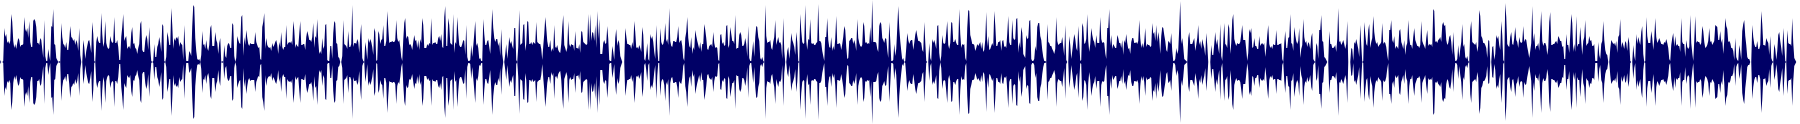 waveform of track #69458